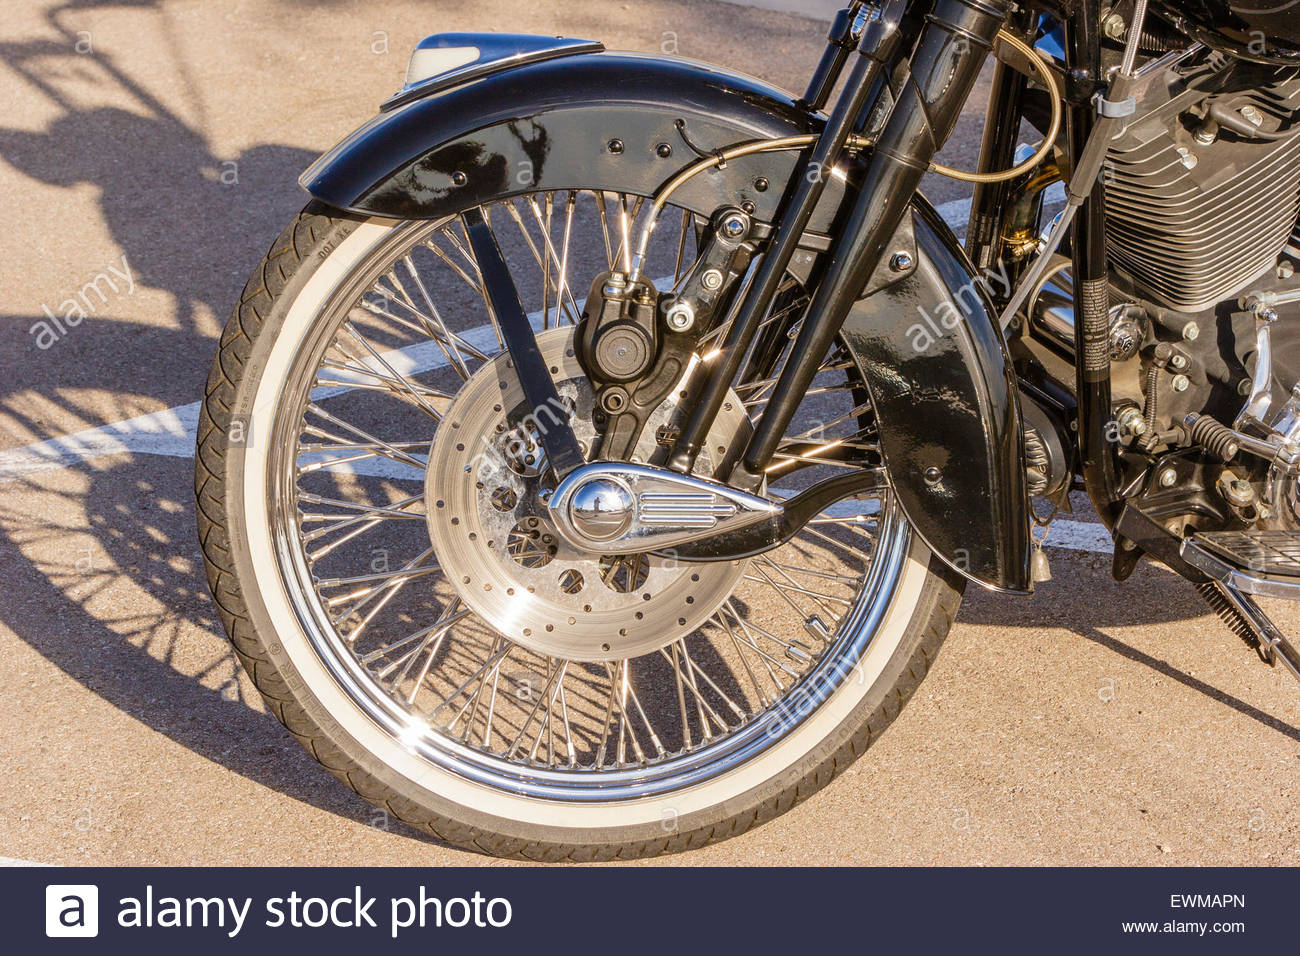 harley-davidson-motorcycle-springer-front-fork-with-spoked-wire-wheel-EWMAPN.jpg